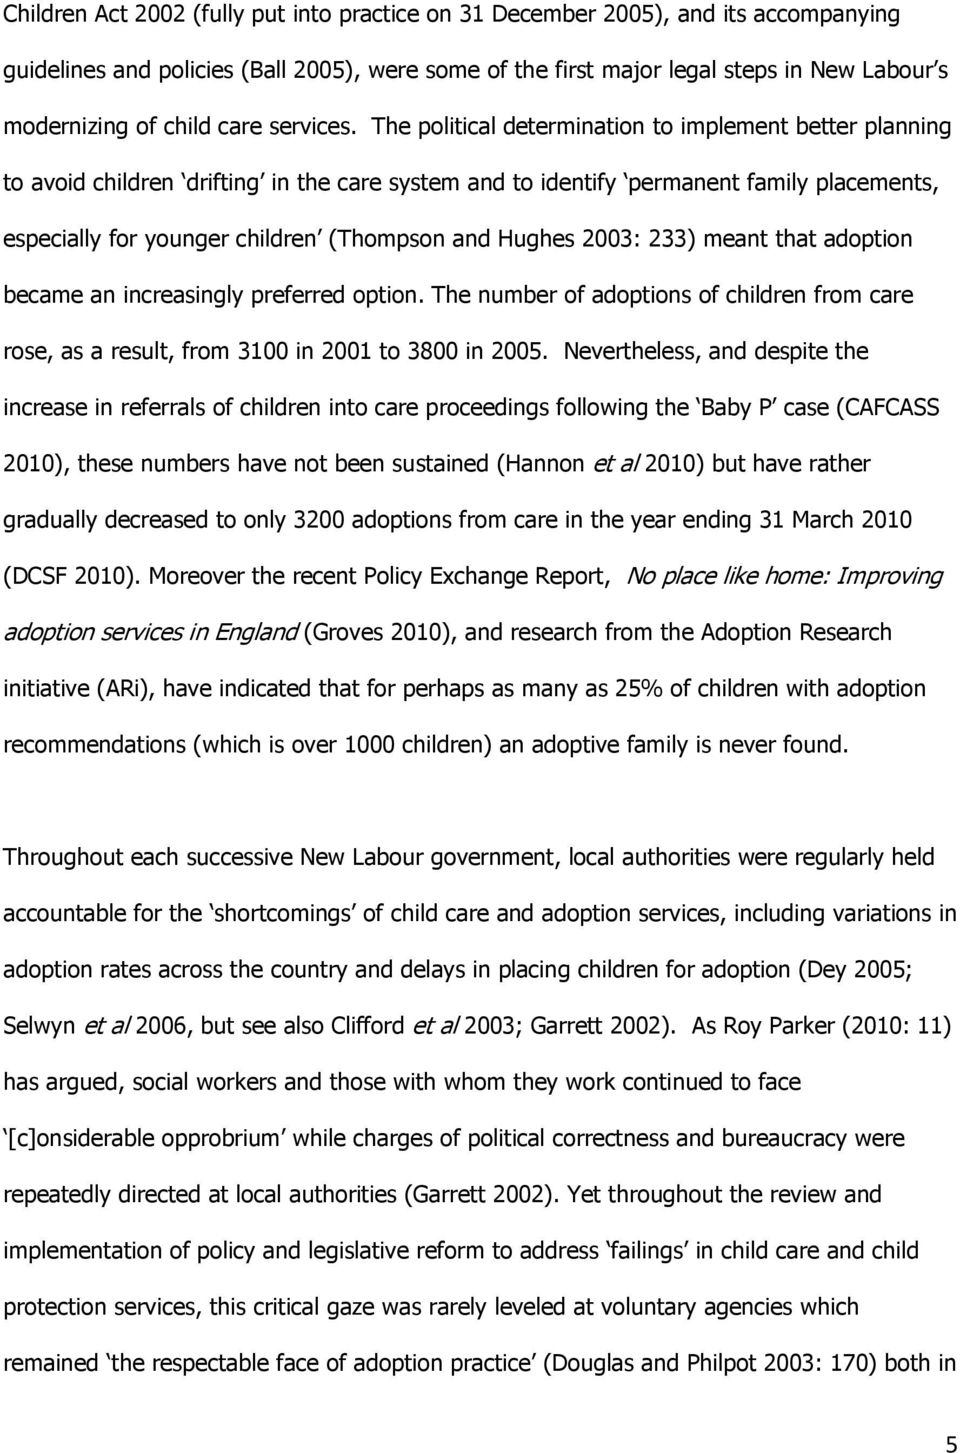 The political determination to implement better planning to avoid children drifting in the care system and to identify permanent family placements, especially for younger children (Thompson and